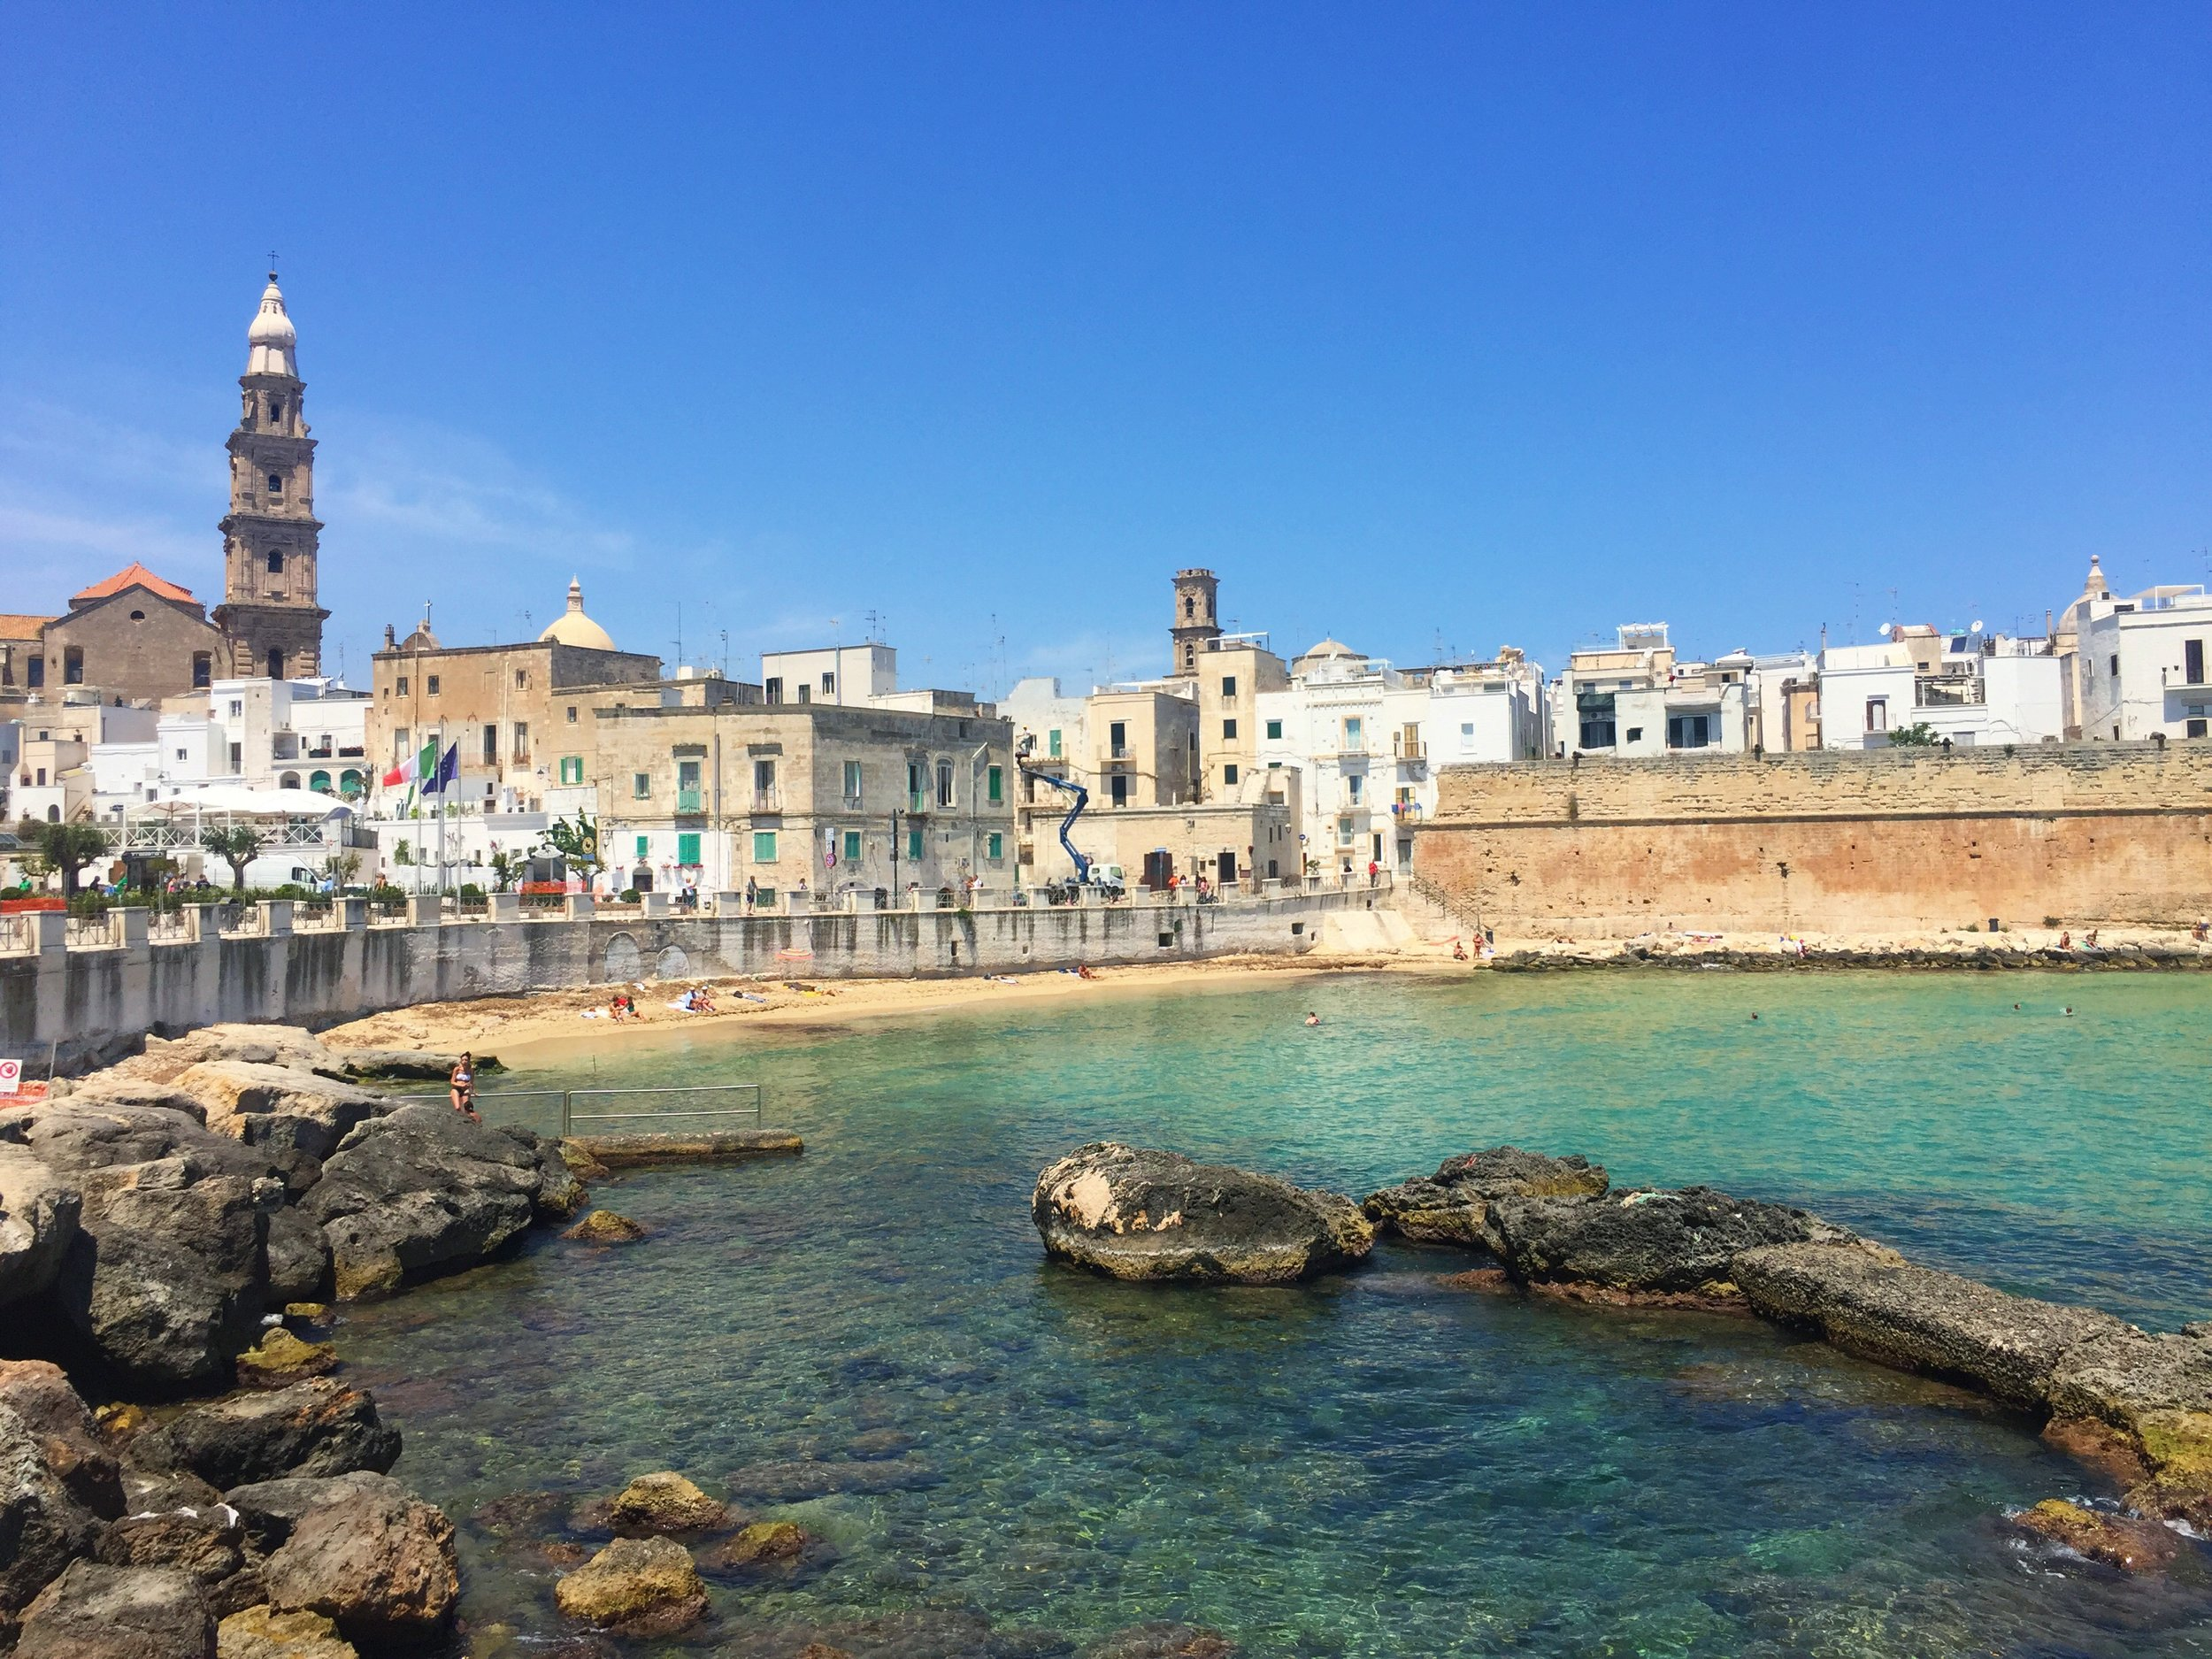 Views of Monopoli's old town from the boardwalk along the sea.